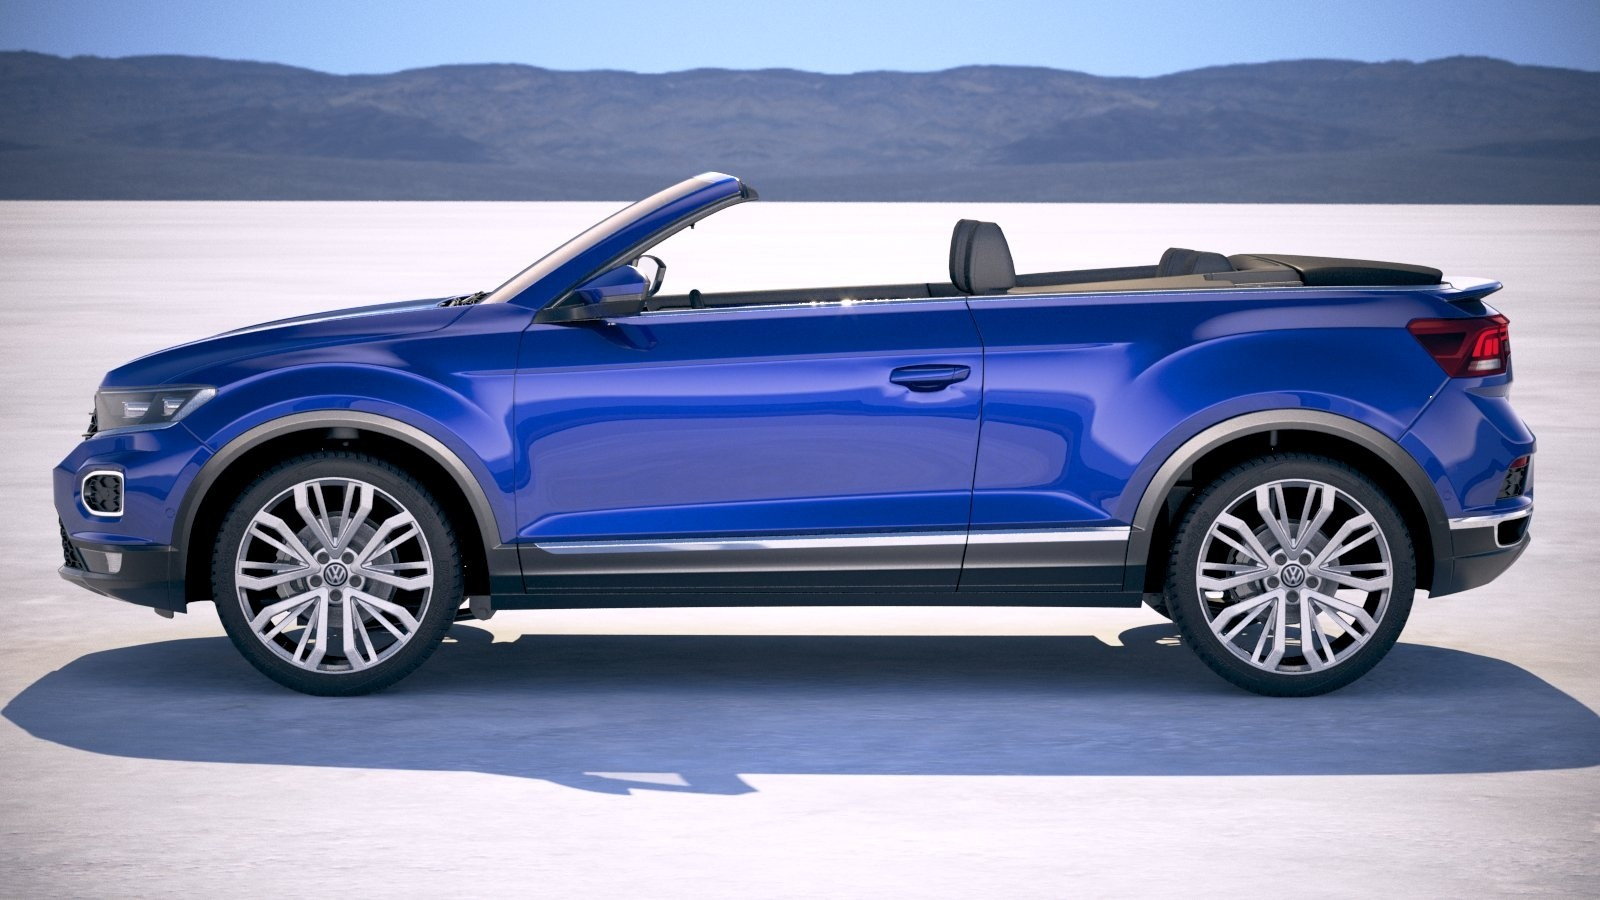 Volkswagen T-Roc Cabriolet Wallpapers